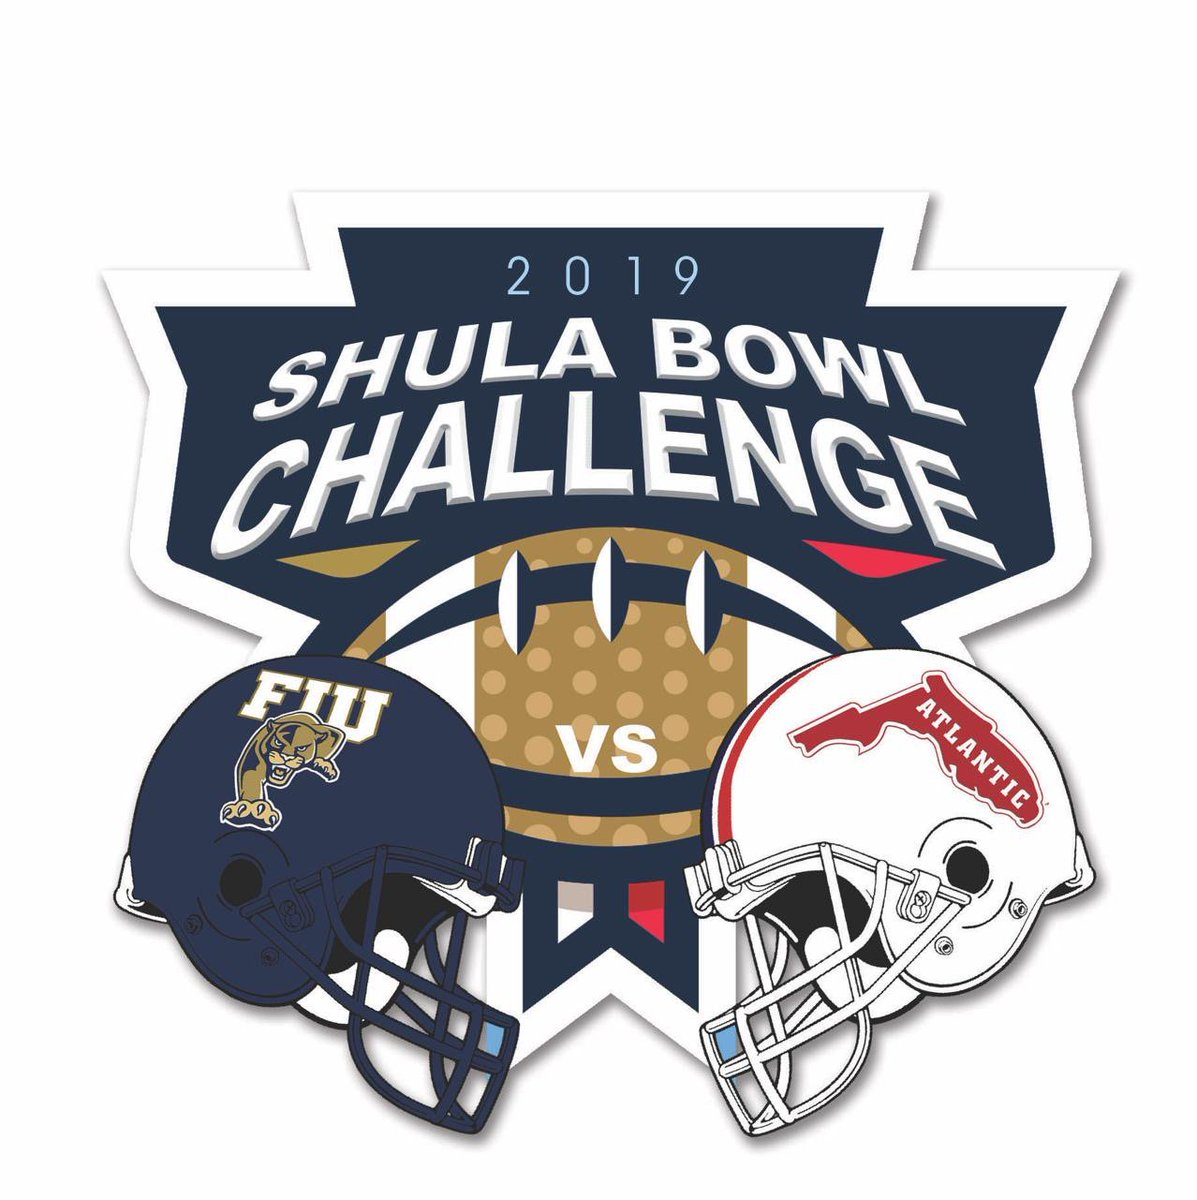 Hey Panthers, the Shula Bowl Challenge ends today! We need your help to wipe out the competition for this year's Shula Bowl '19. Every donation counts to help our FIU reach the #FIUNextHorizon. Donate: bit.ly/ShulaBowlDonat…